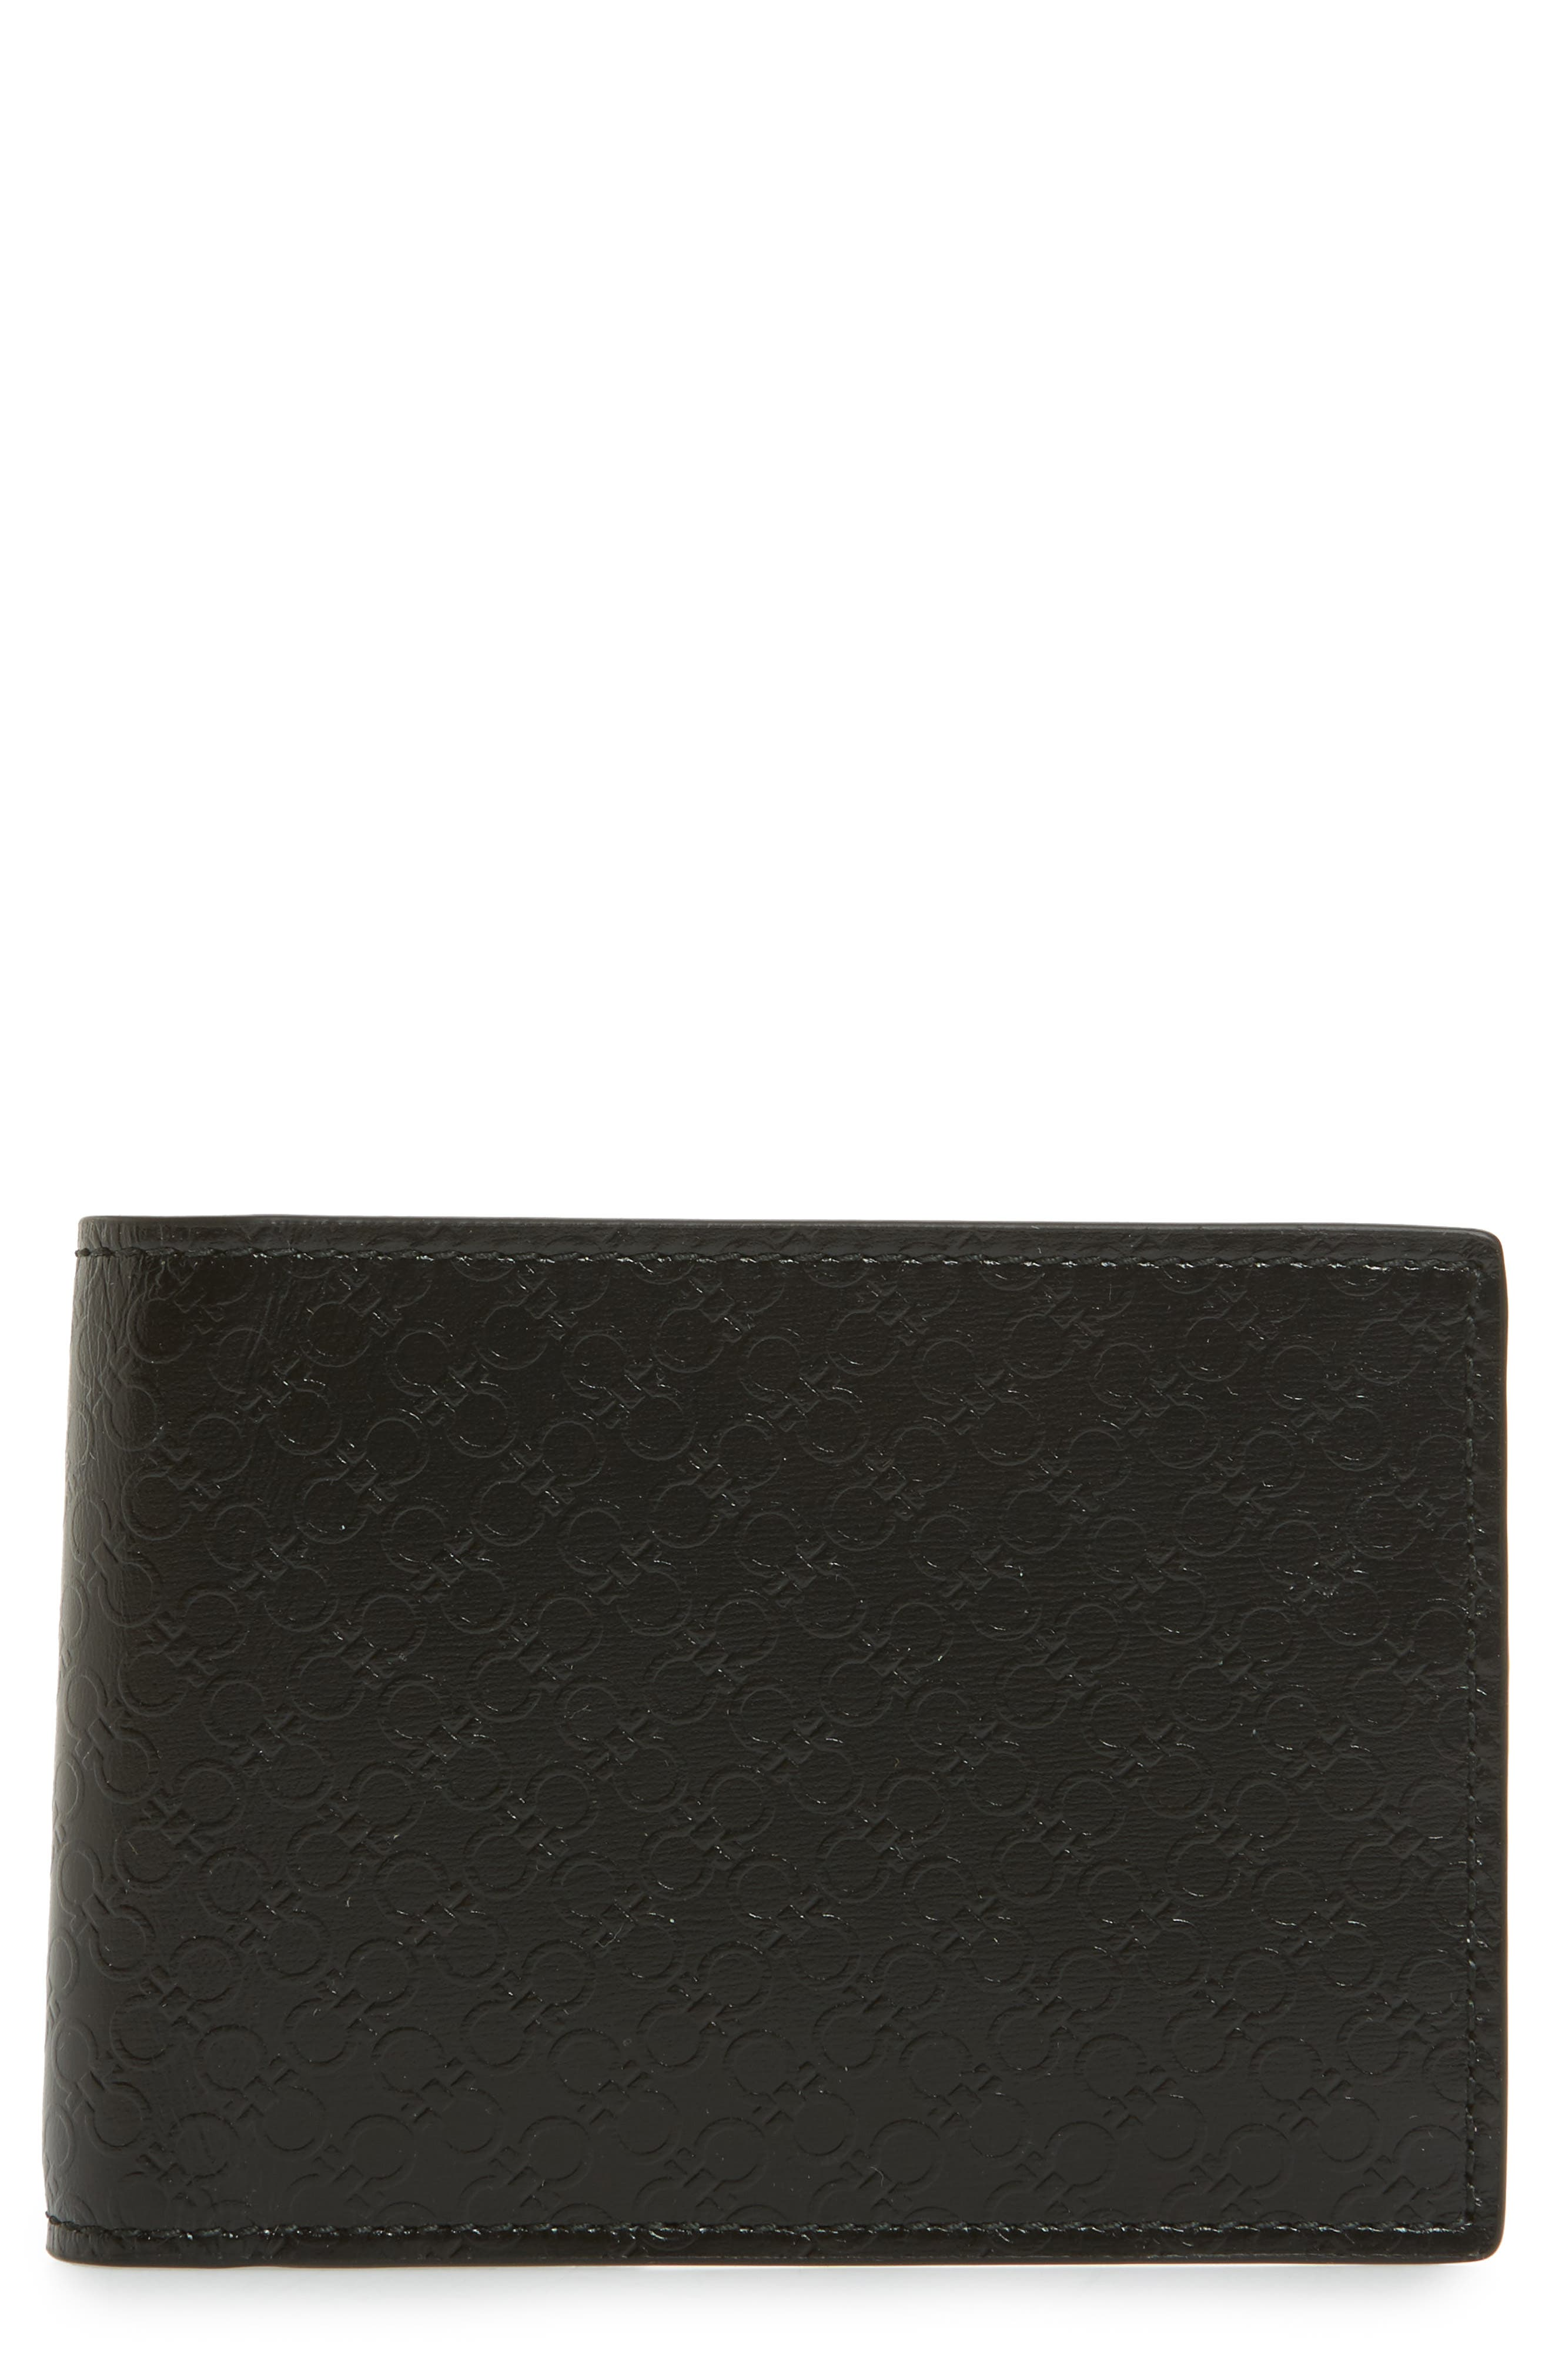 Gancini Leather Card Case,                         Main,                         color, 001